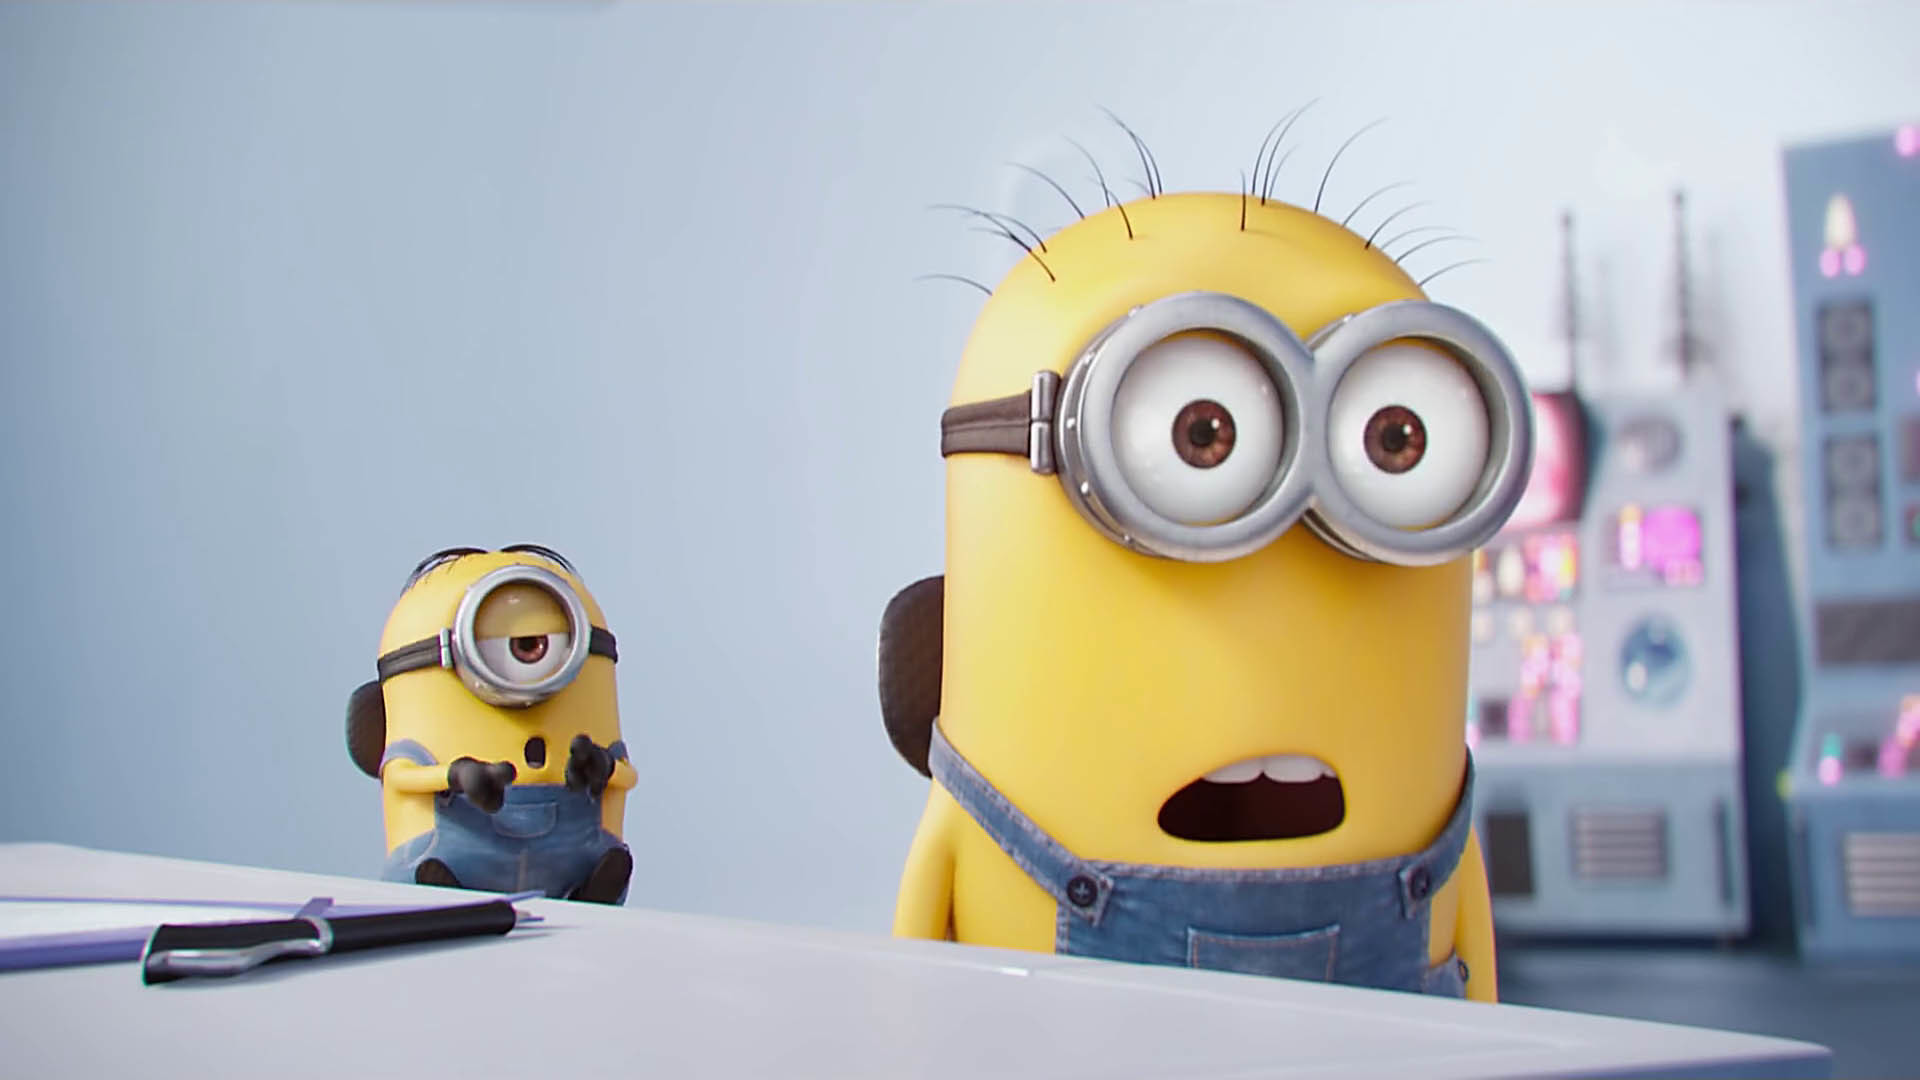 Cheering Minions - Reaction GIFs Pictures of all the minions